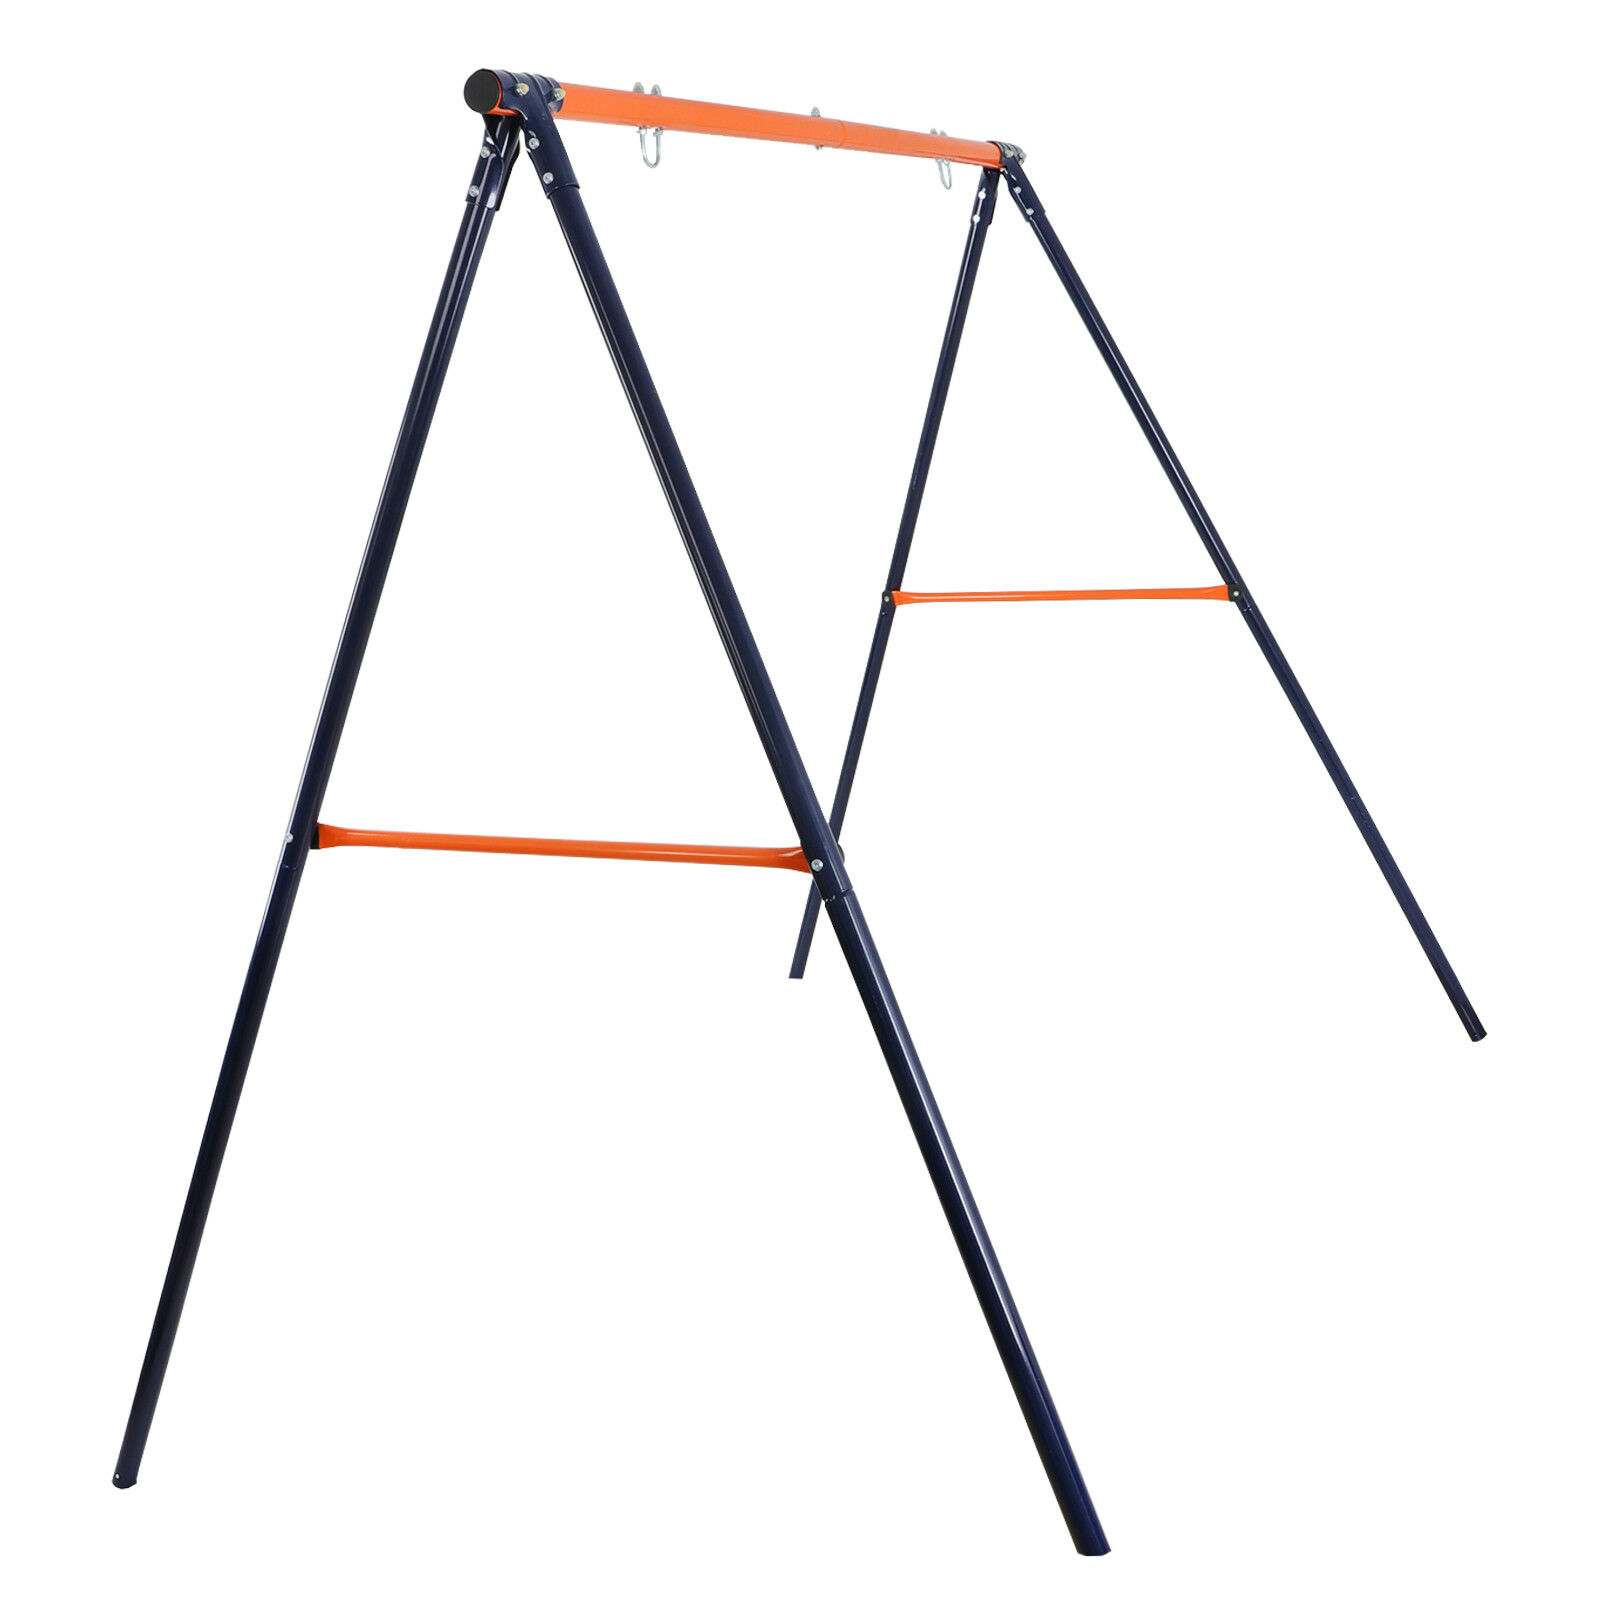 """A-Frame Swing Stand Yard Lawn Playground + 48"""" Spider Web Tree Swing Net Garden Outdoor Toys & Structures"""